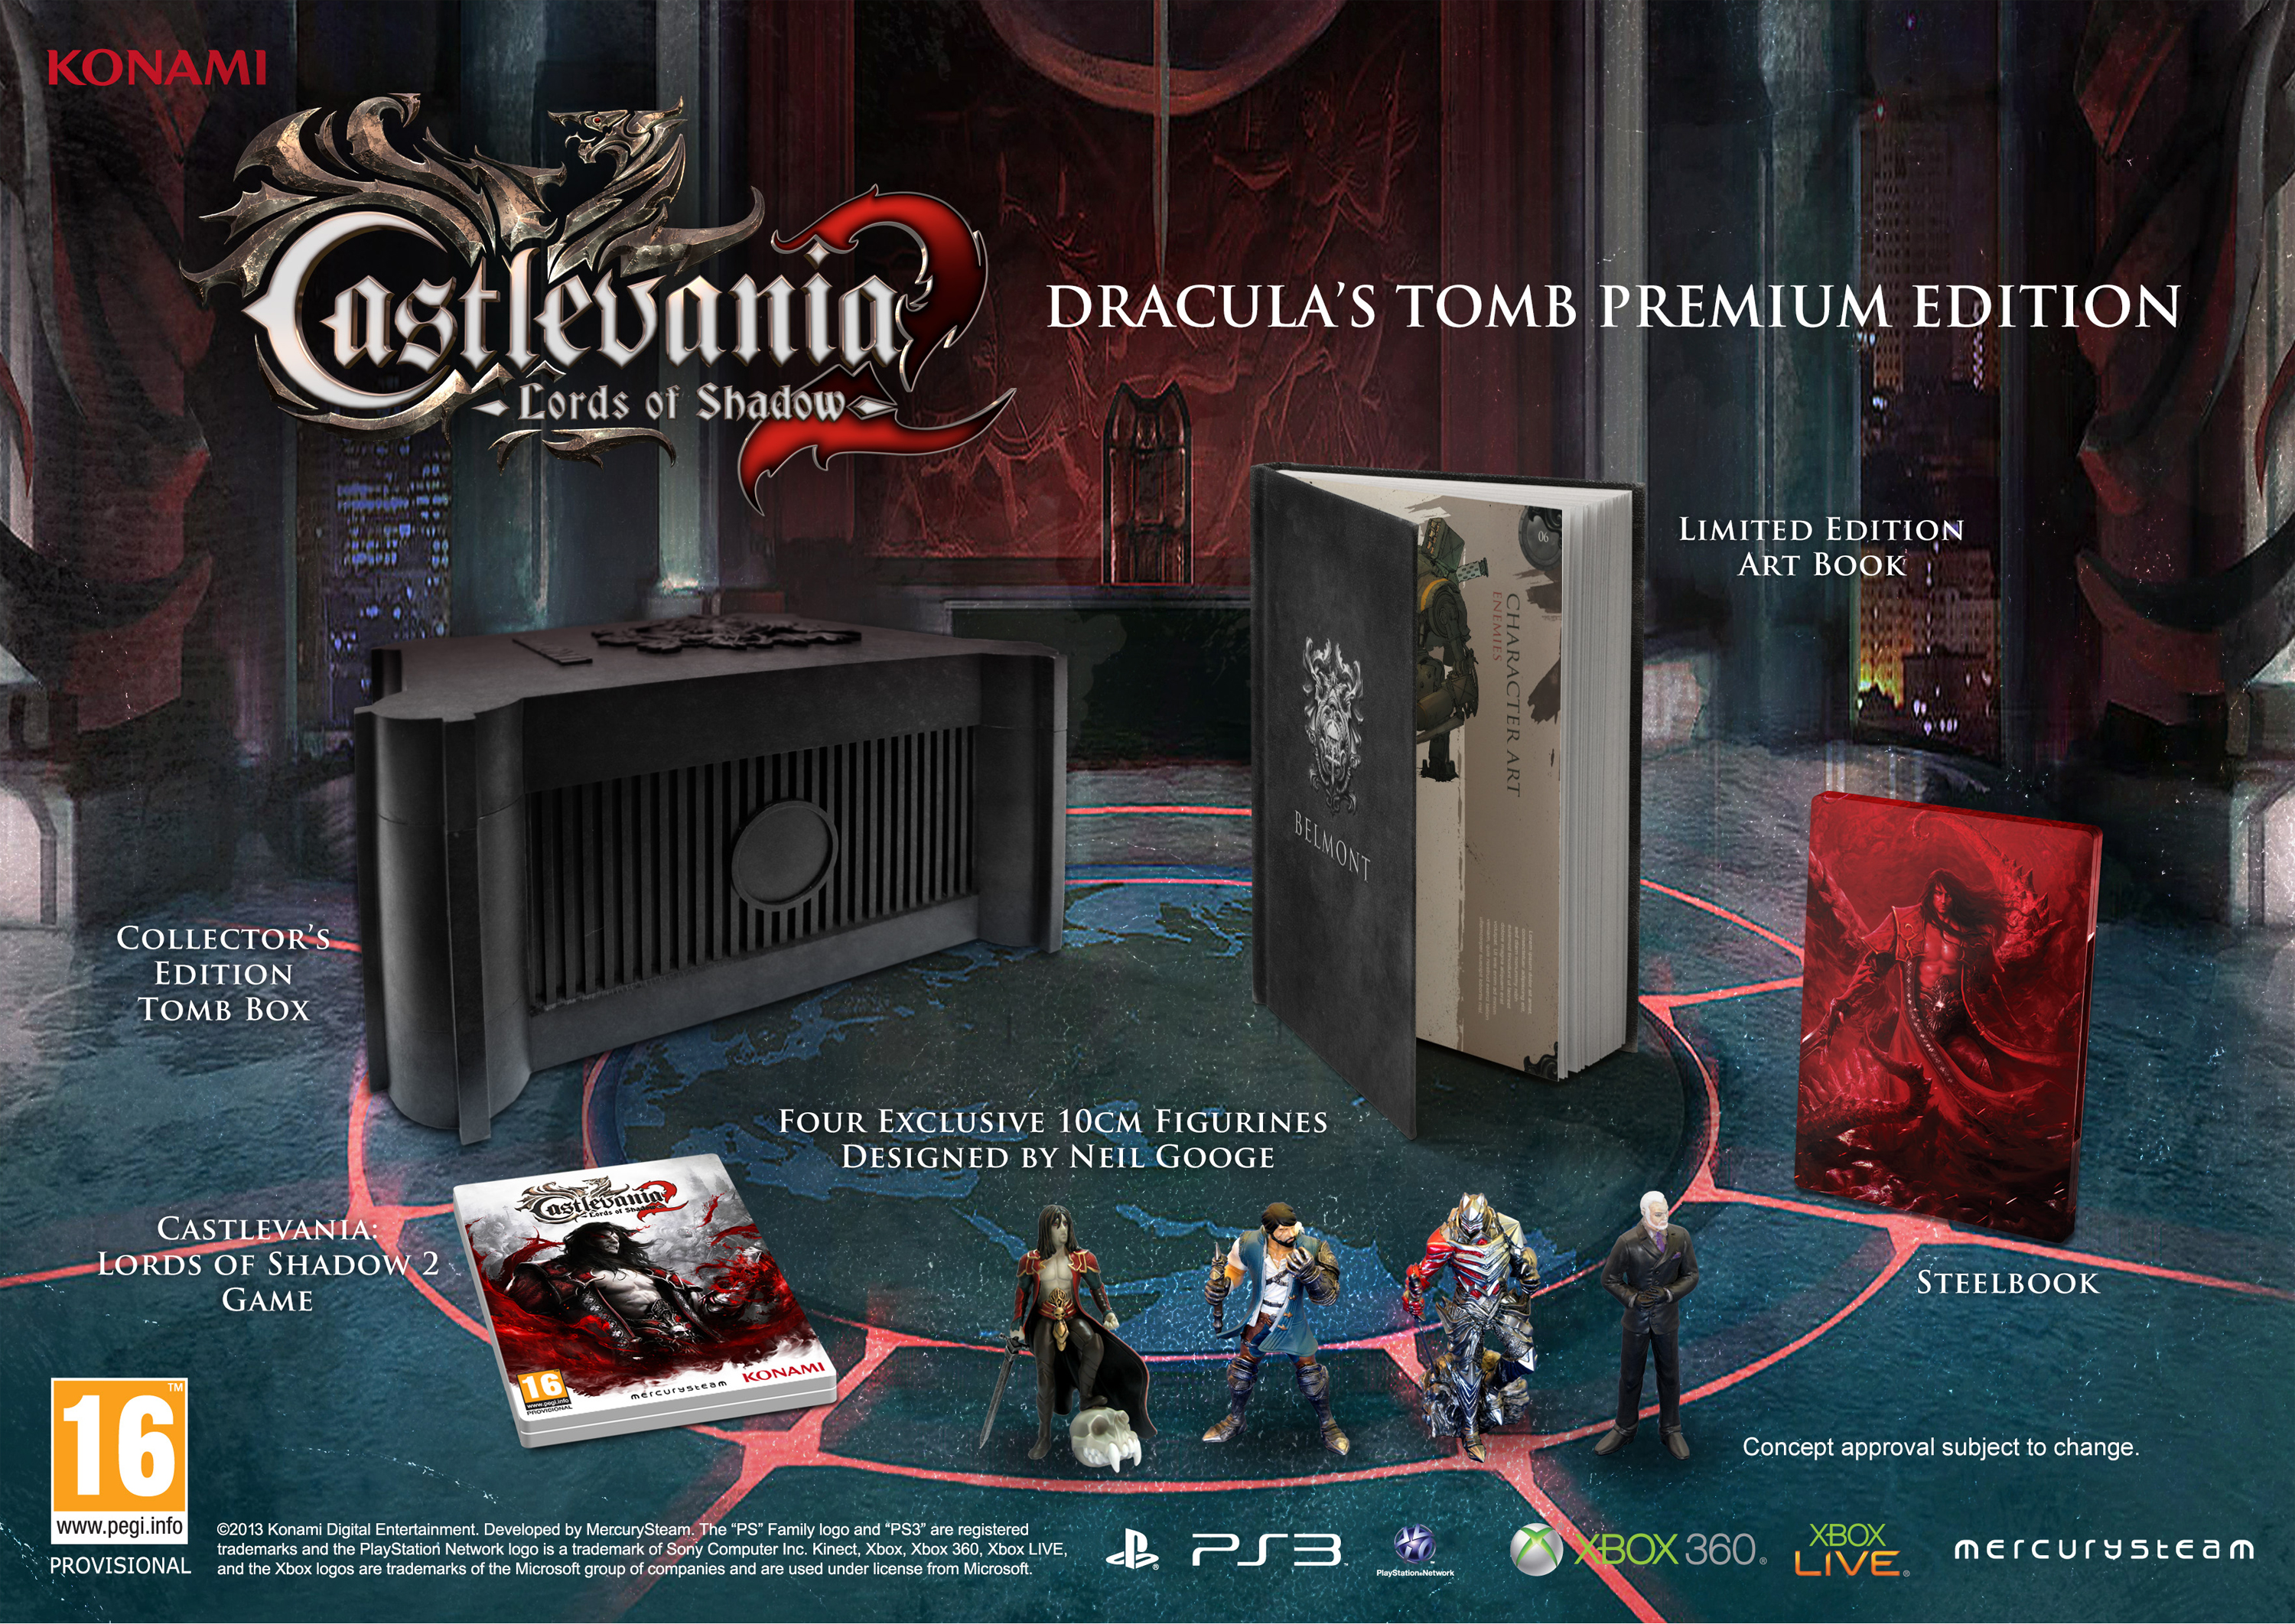 lords-of-shadow-2-draculas-tomb-premium-edition